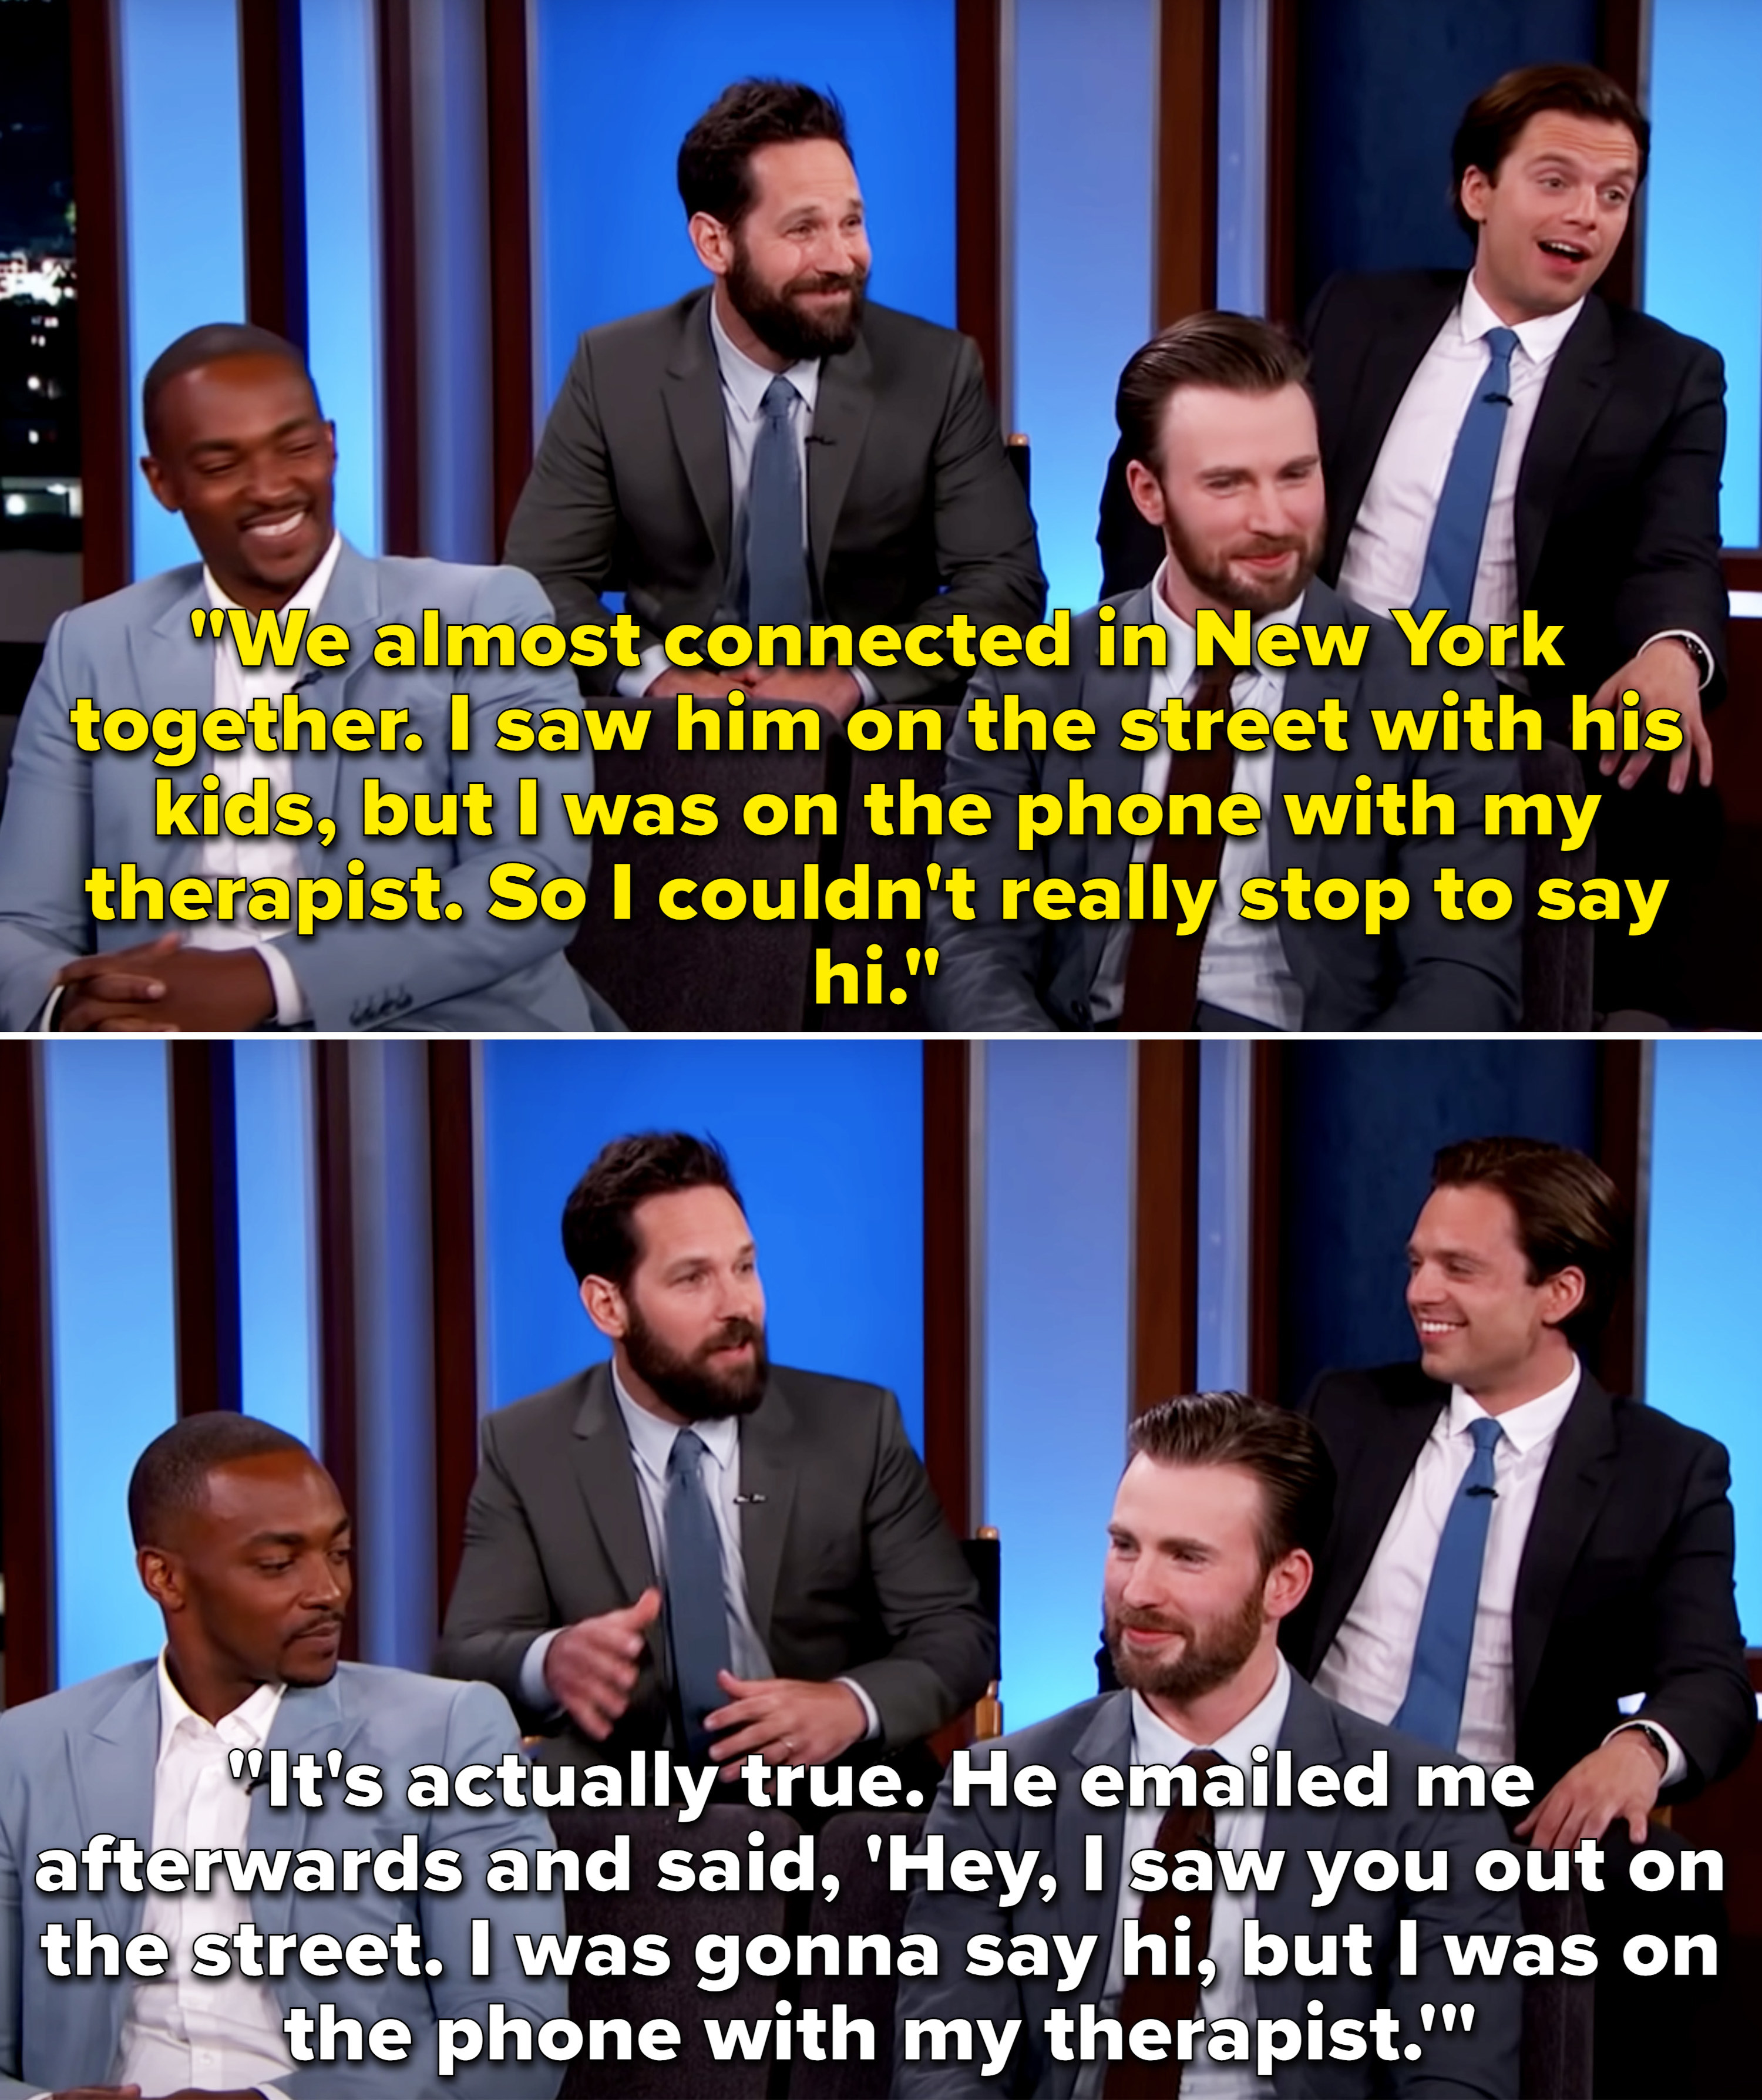 Paul Rudd saying that Sebastian emailed him saying he didn't say hi because he was on the phone with his therapist